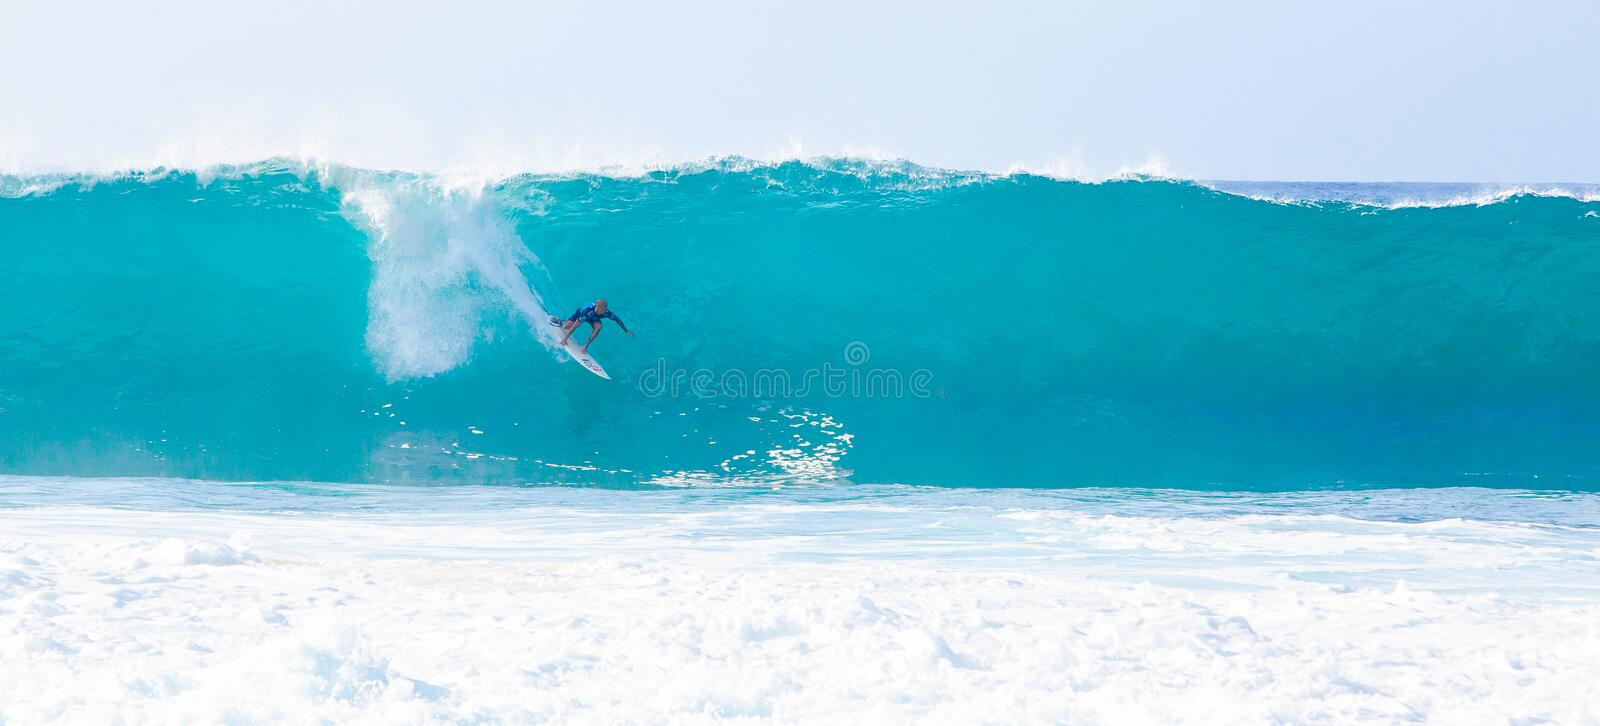 Surfer Kelly Slater Surfing Pipeline in Hawaii stock images